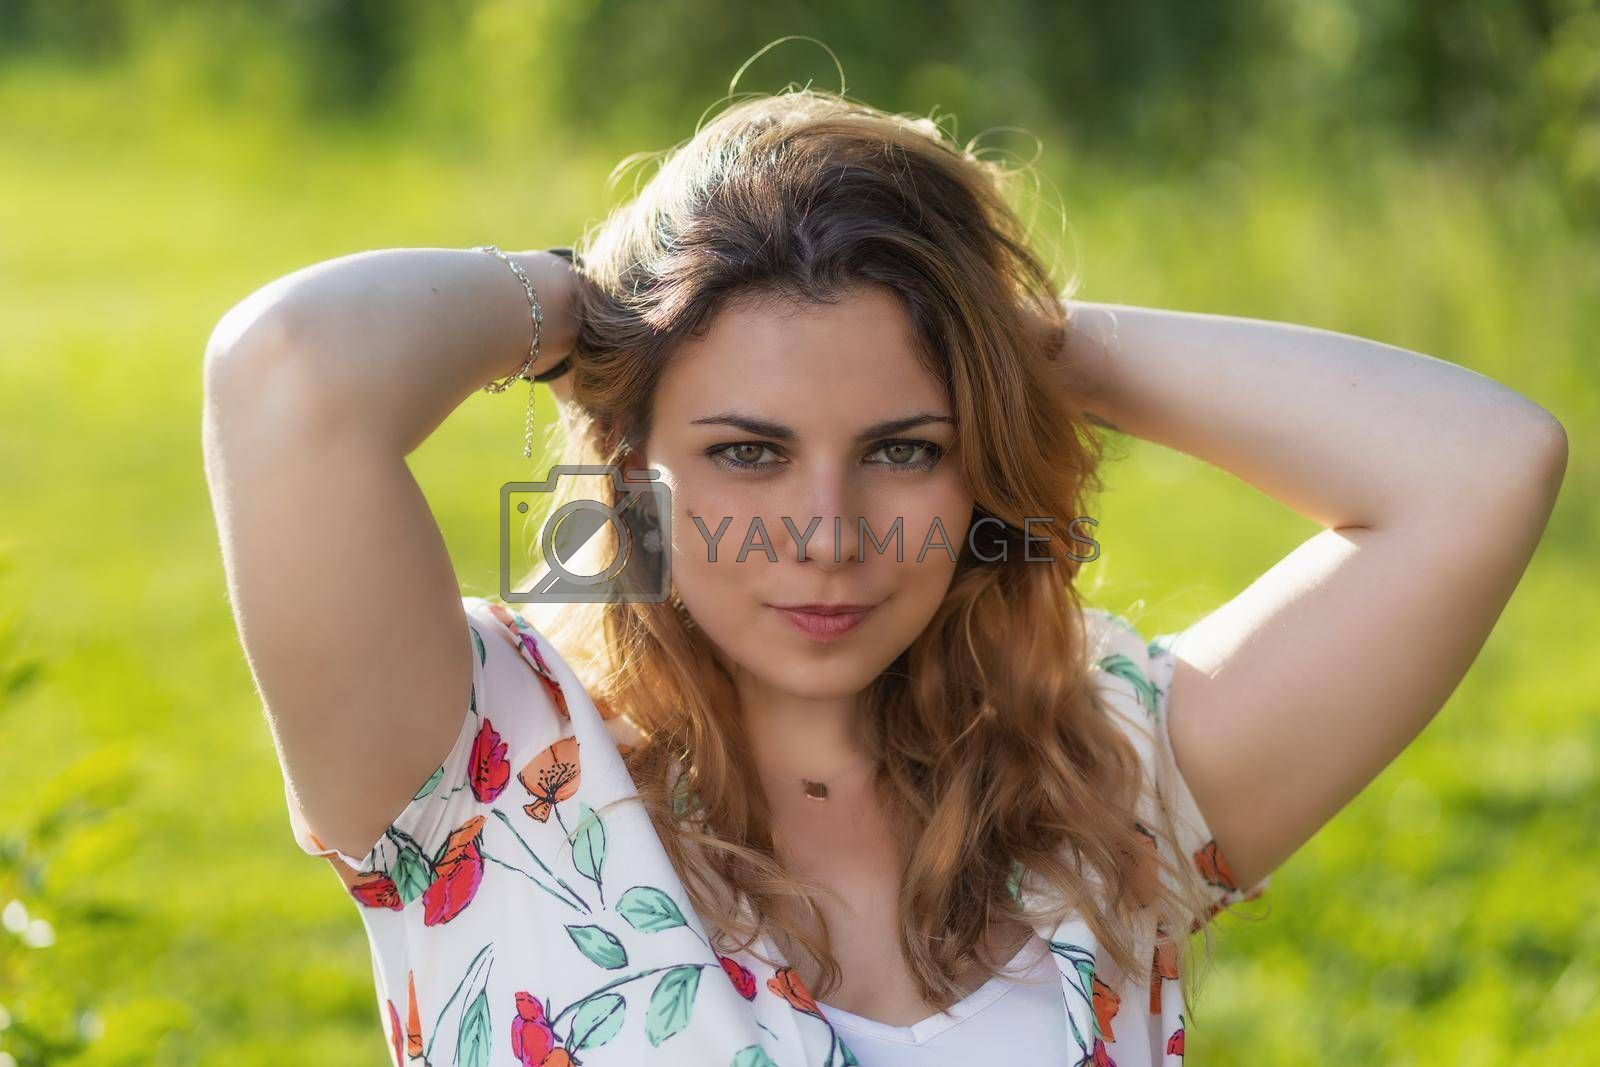 Royalty free image of Atractive beautiful  young woman is posing outdoors. by Frank11